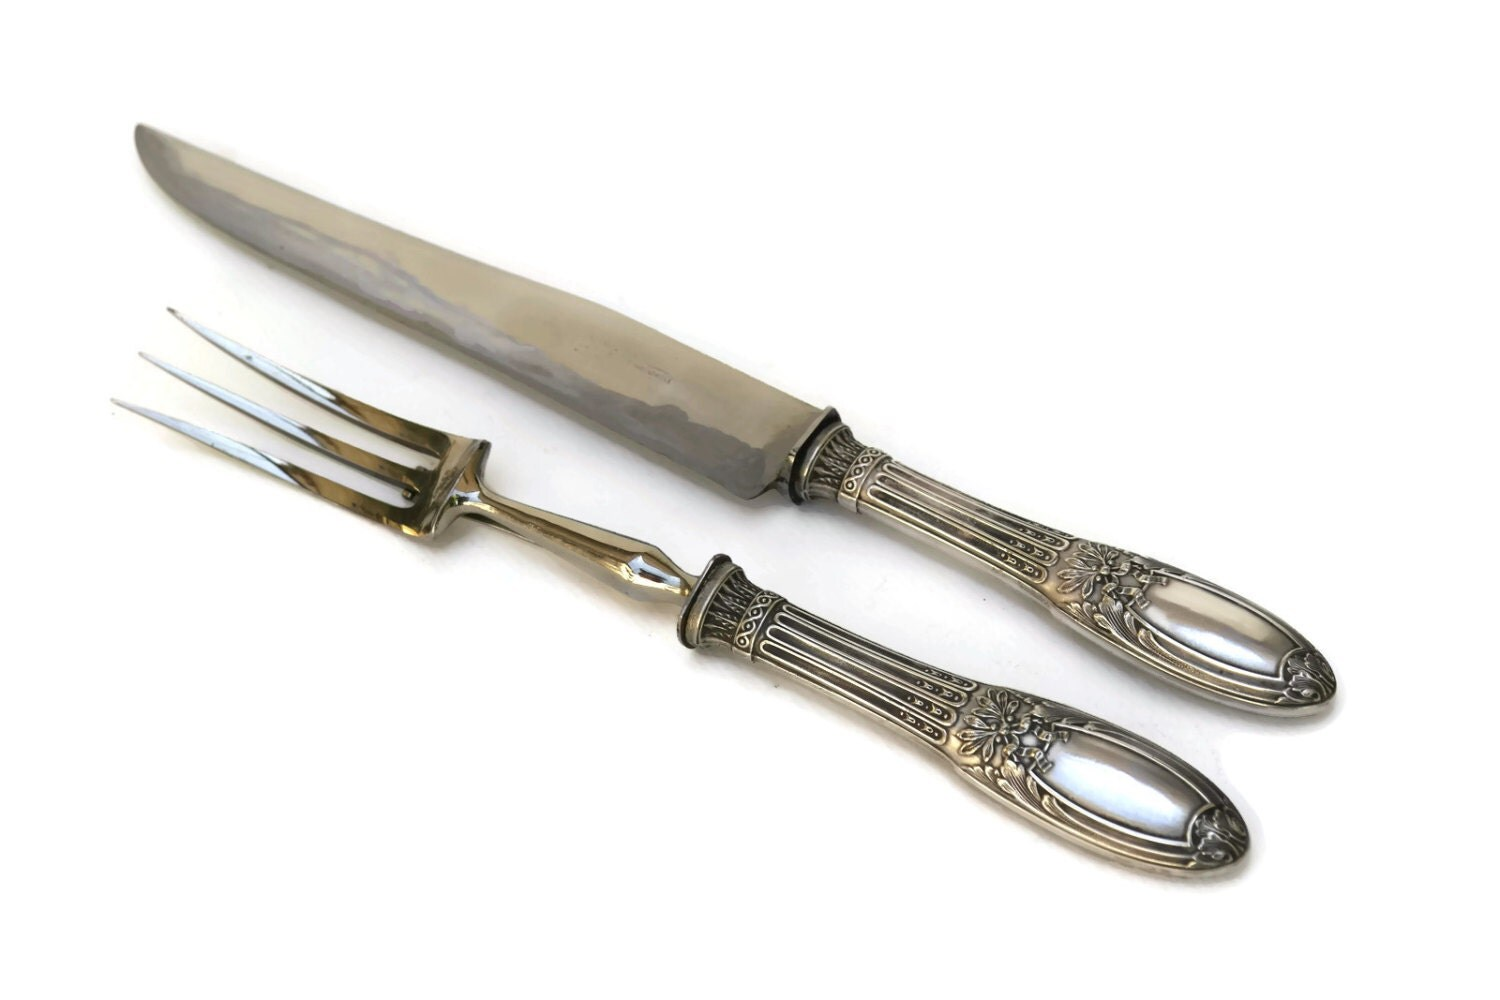 Antique silver carving set with knife and fork by